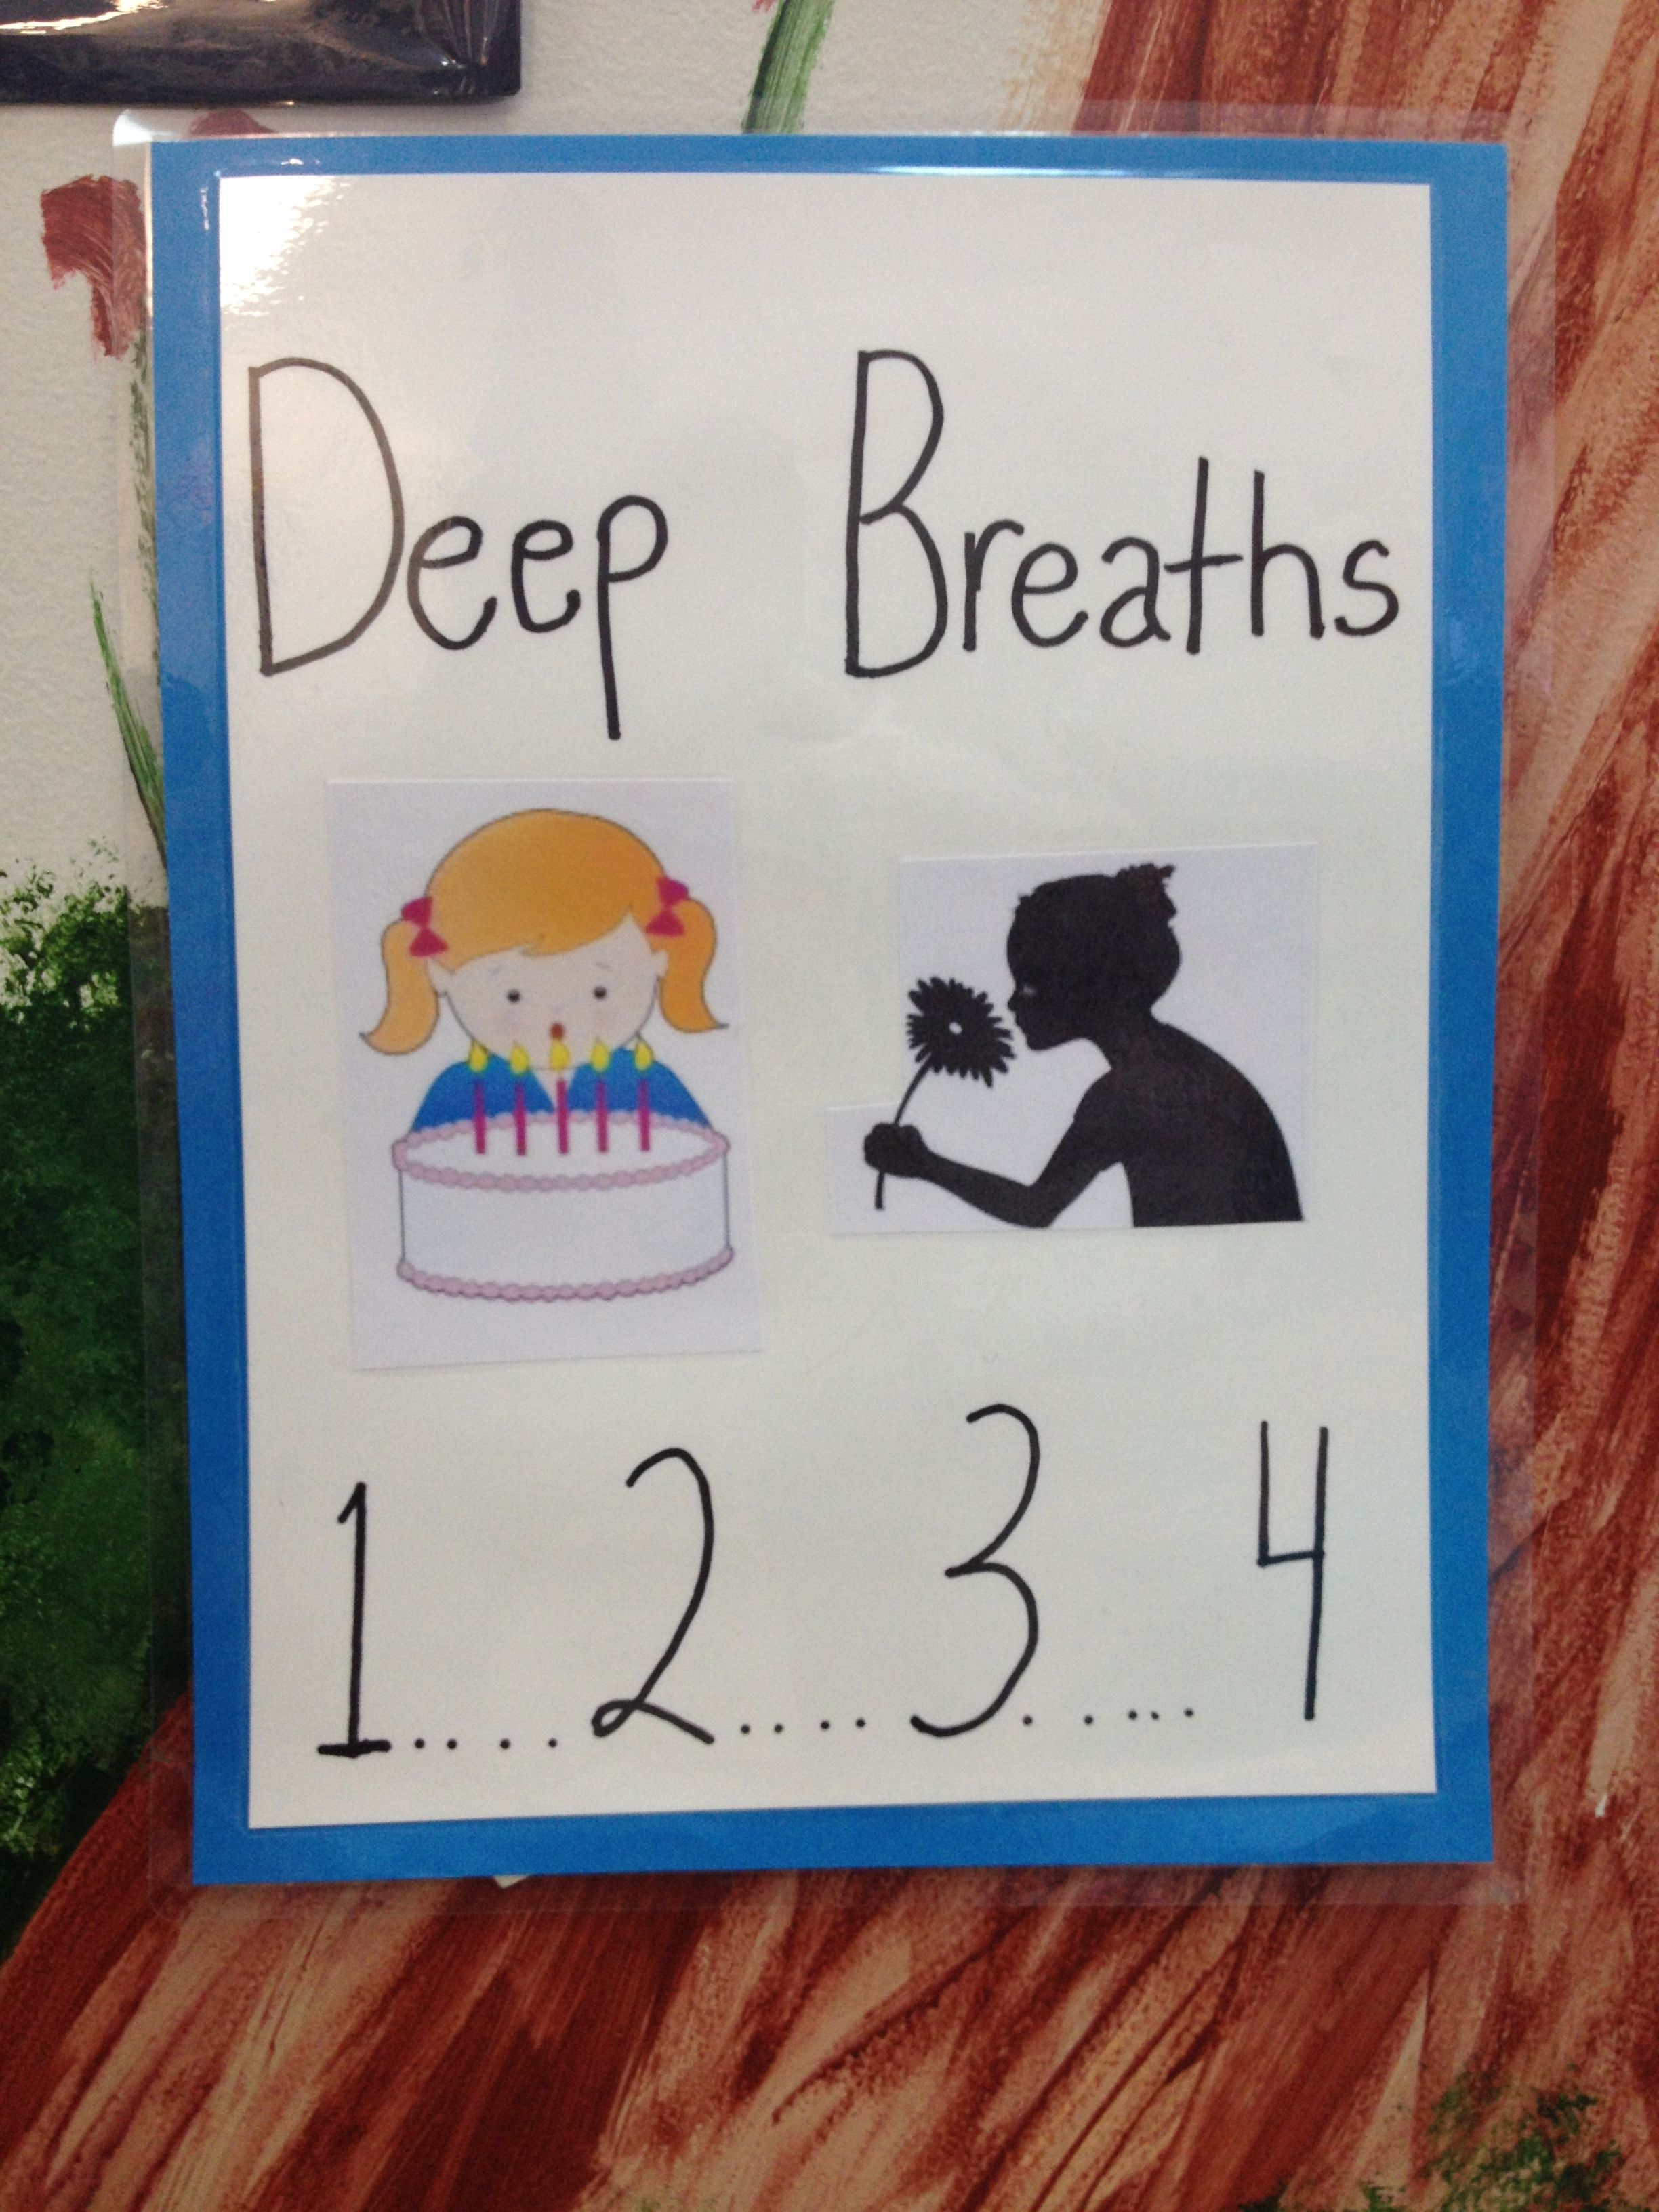 4 deep breaths poster. smell the flowers, blow out the birthday cake